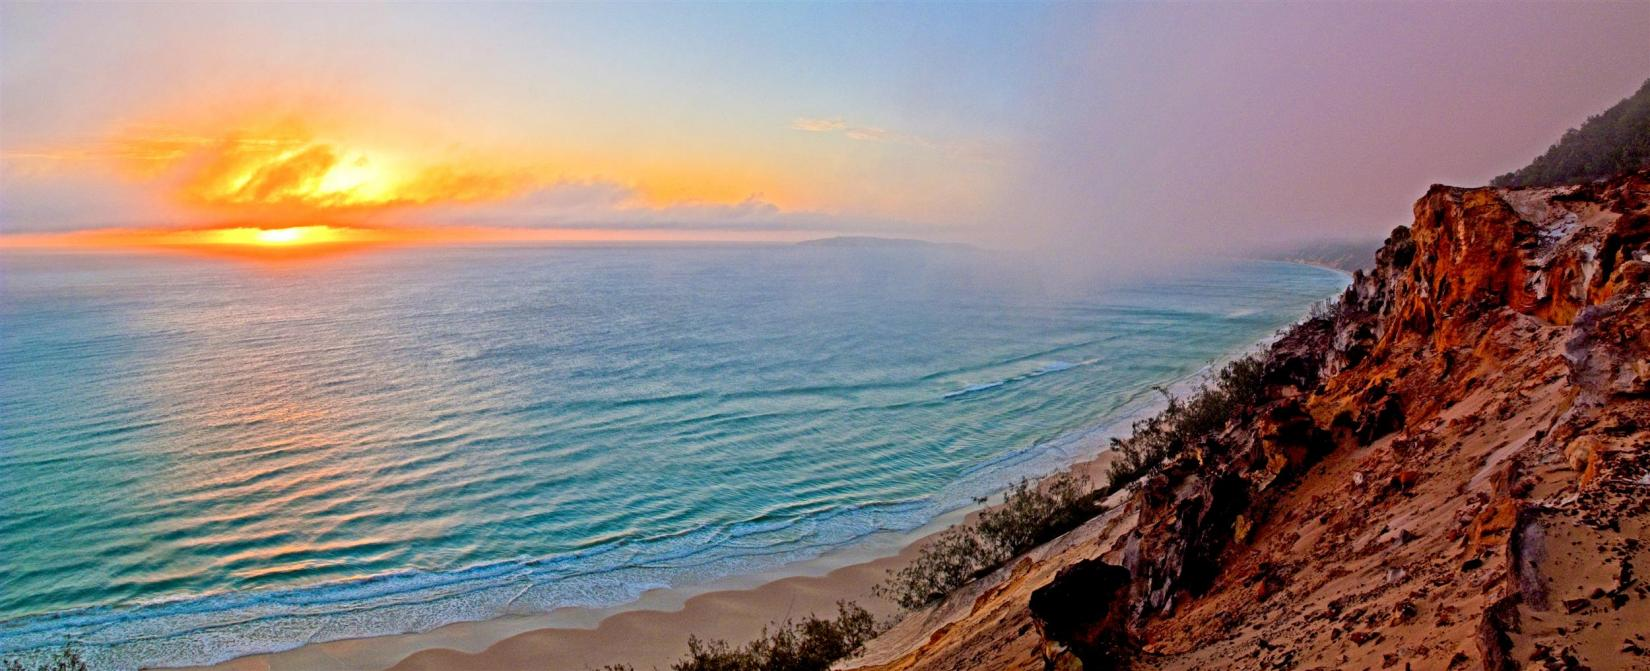 An early fog blows west onto the Pacific Ocean above the rainbow-coloured sands of Cooloola National Park.